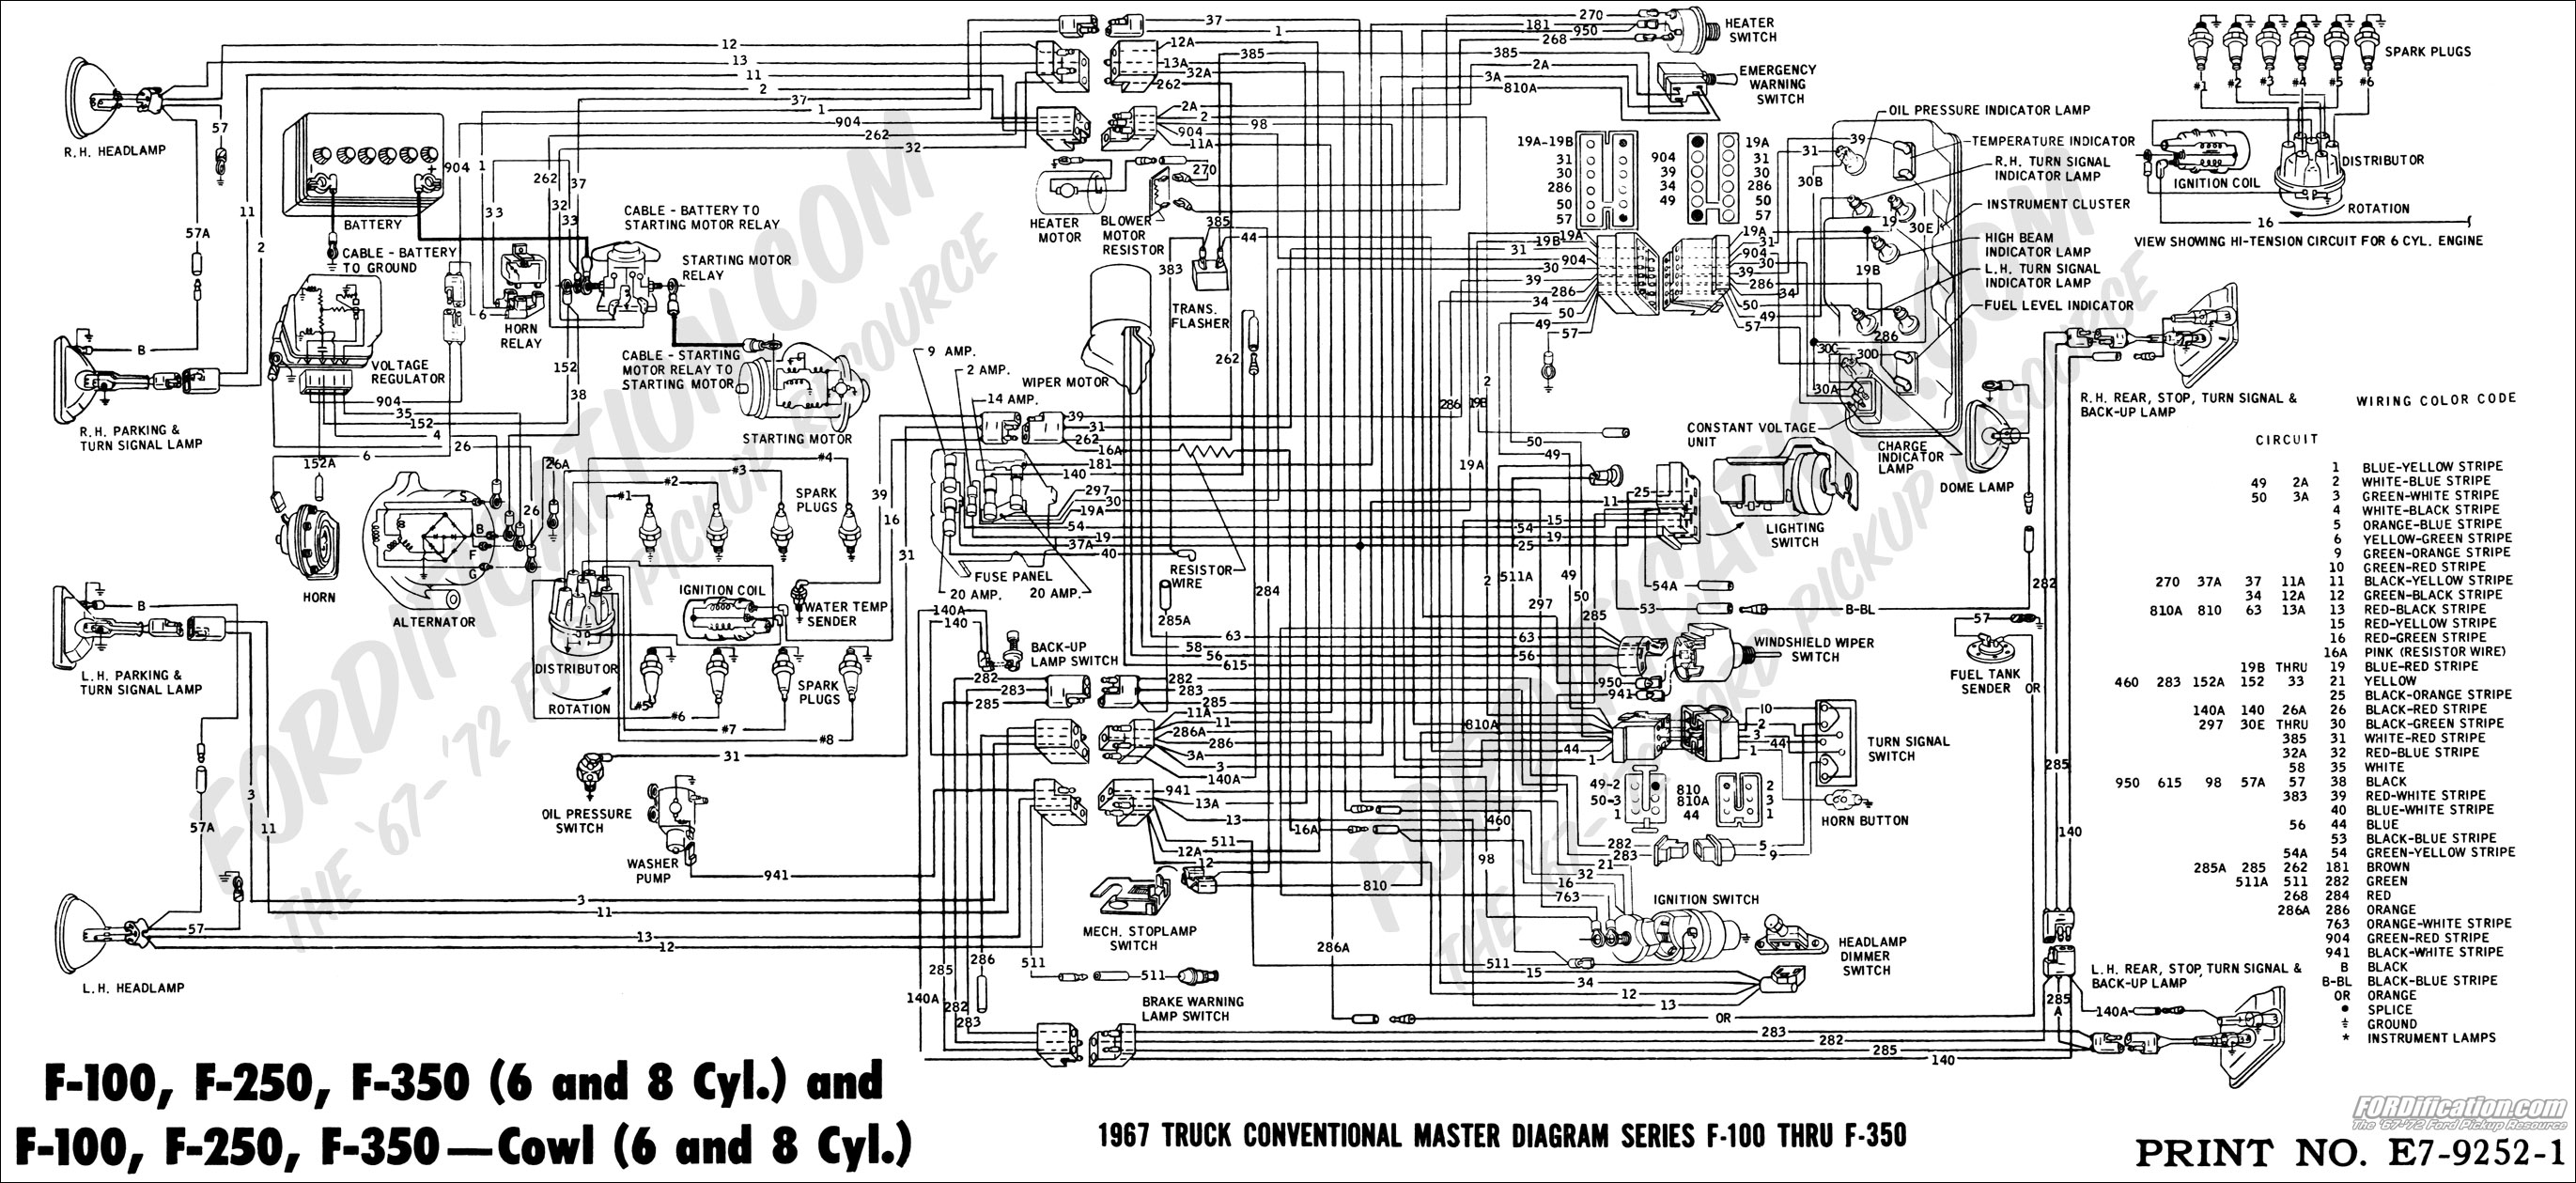 67masterdiagram ford truck technical drawings and schematics section h wiring Aftermarket Radio Wire Harness Adapter at fashall.co